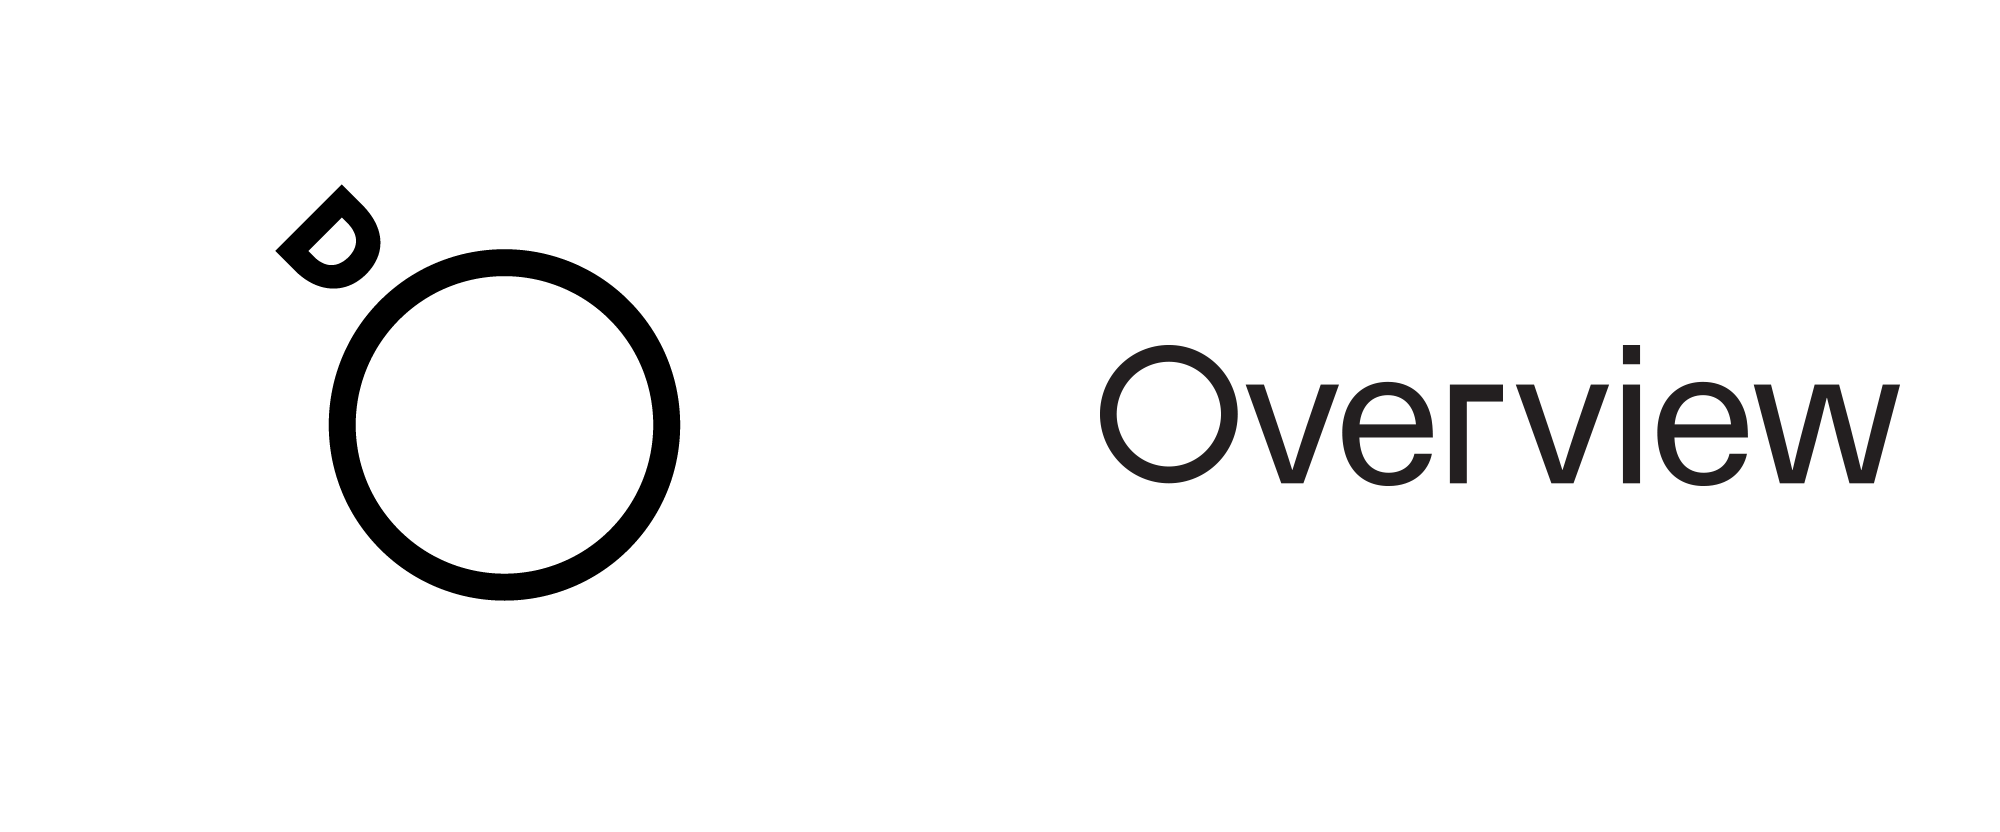 New Logo and Identity for Overview by Ben Bloom